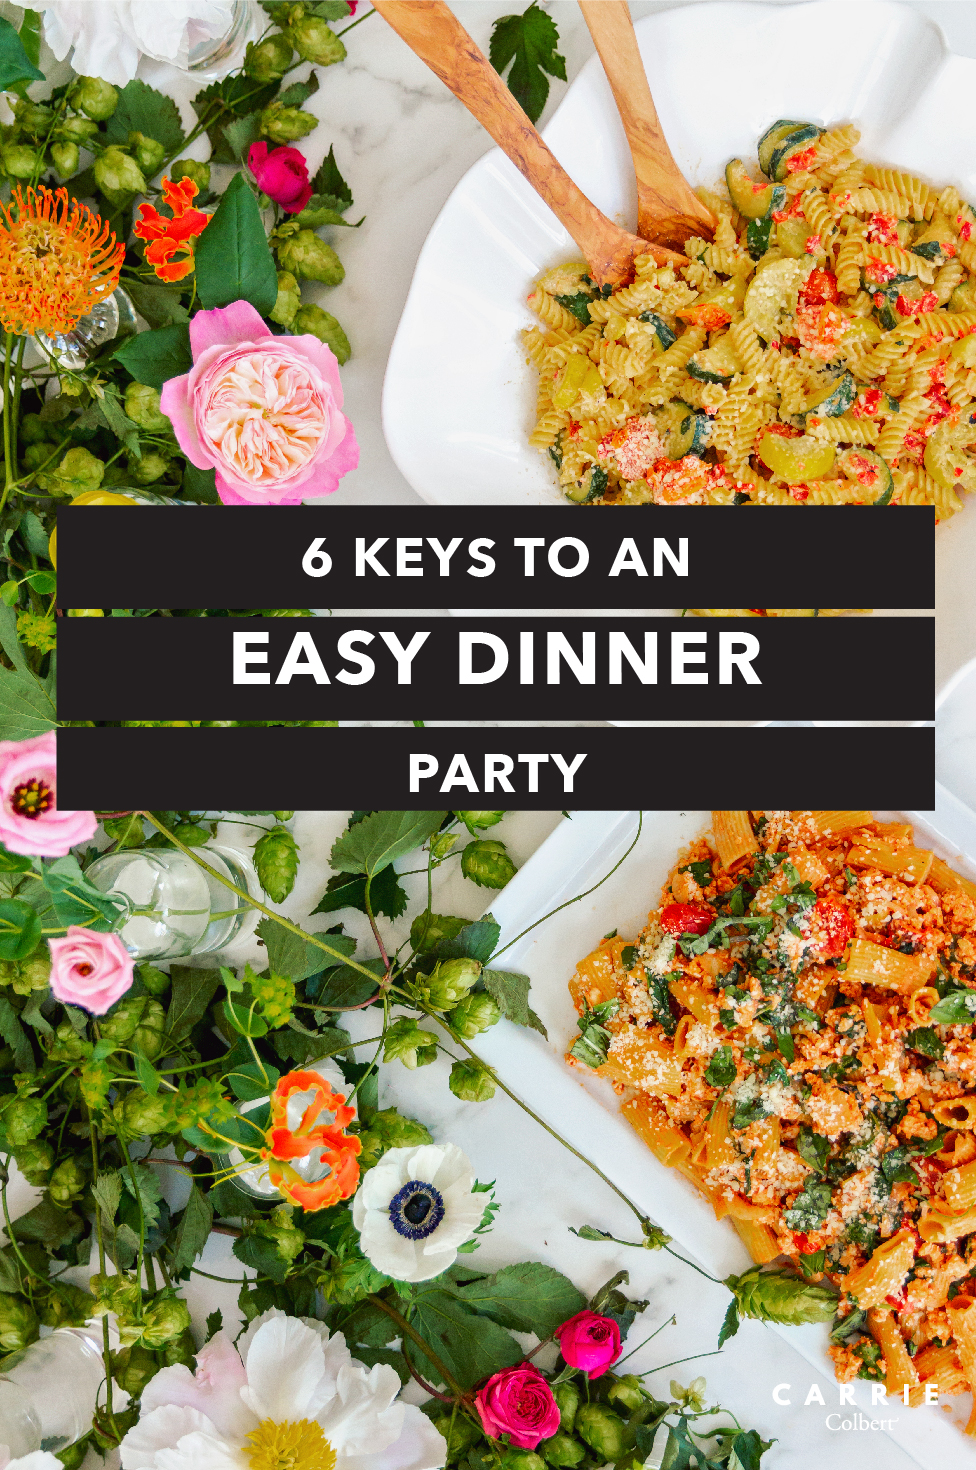 6 keys to an easy dinner party with plated carrie colbert